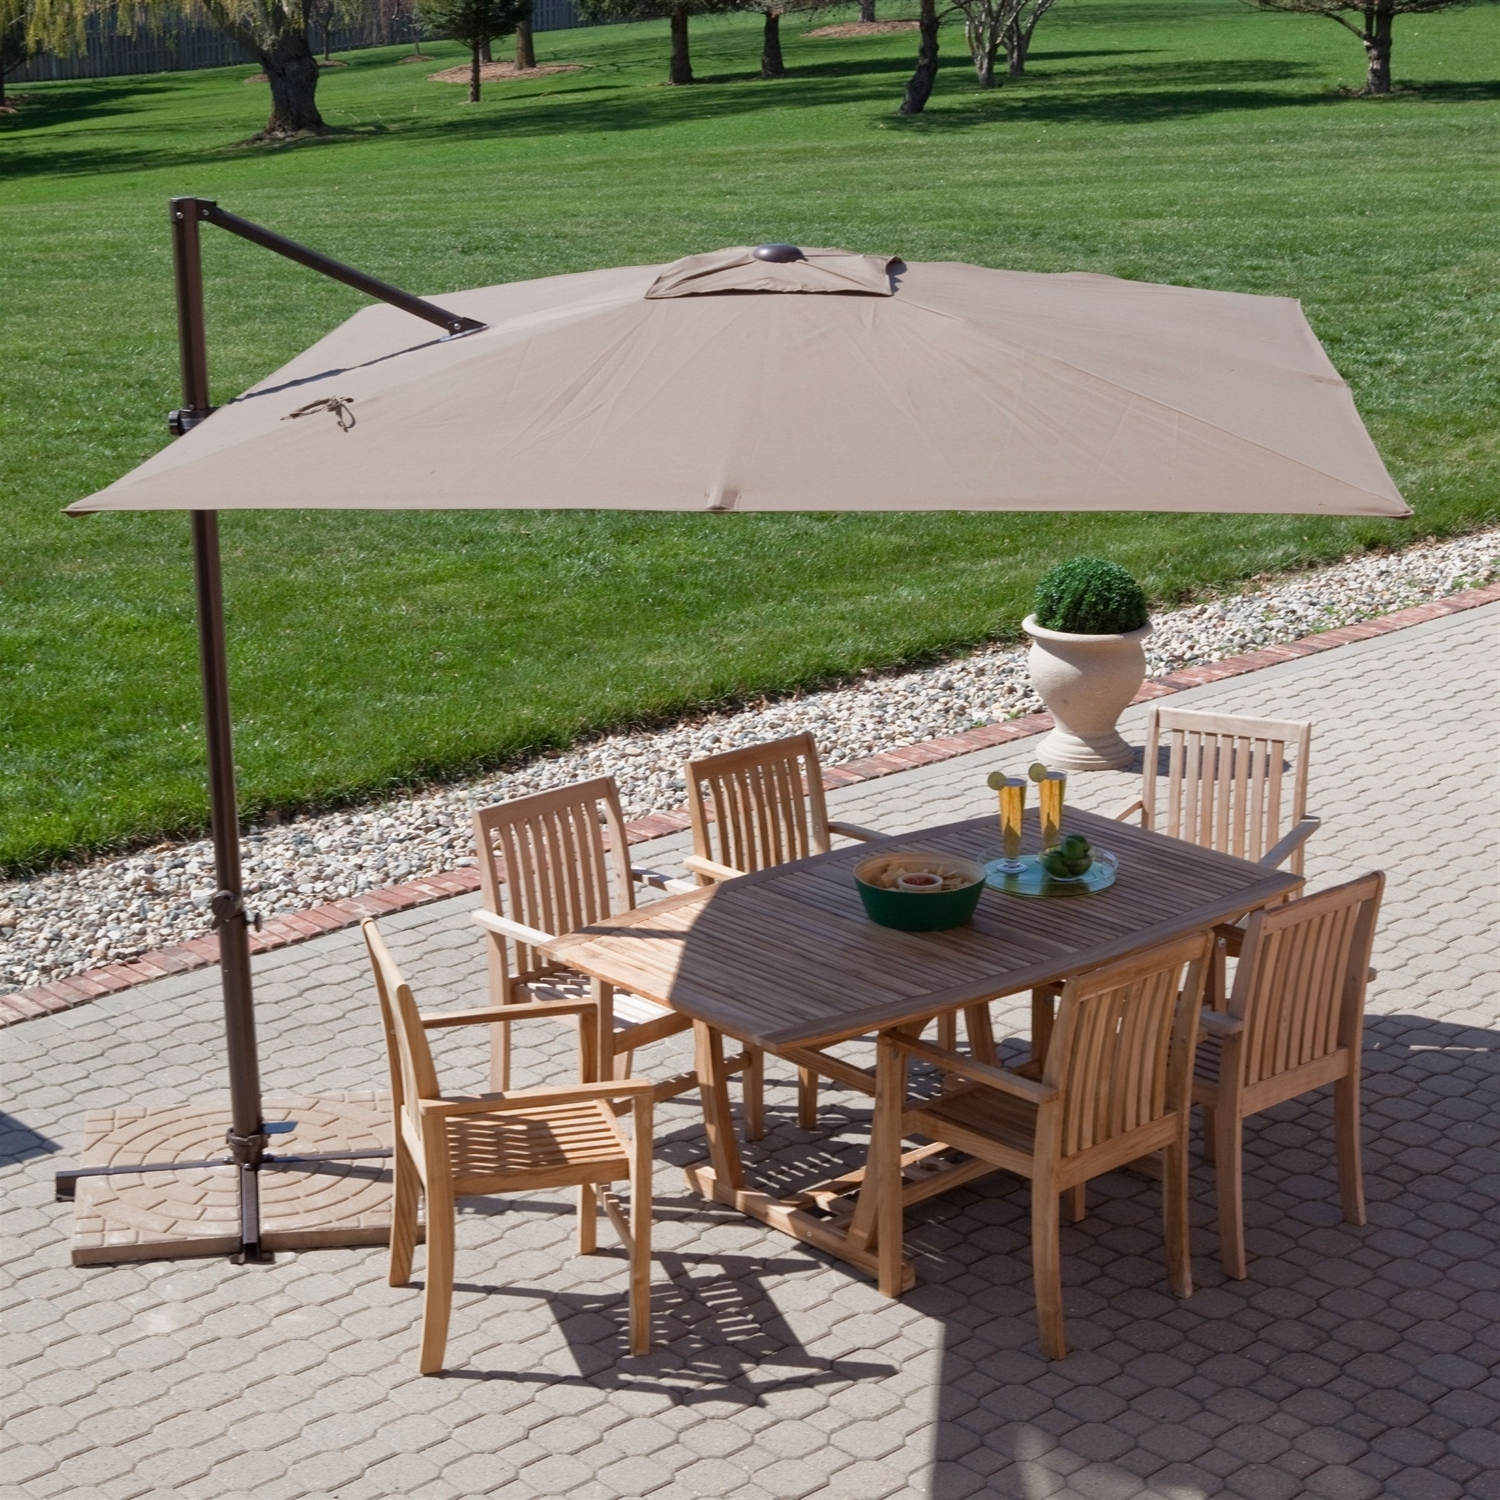 Current Offset Rectangular Patio Umbrellas With Regard To A Guide To Buying Offset Patio Umbrella – Blogbeen (Gallery 3 of 20)